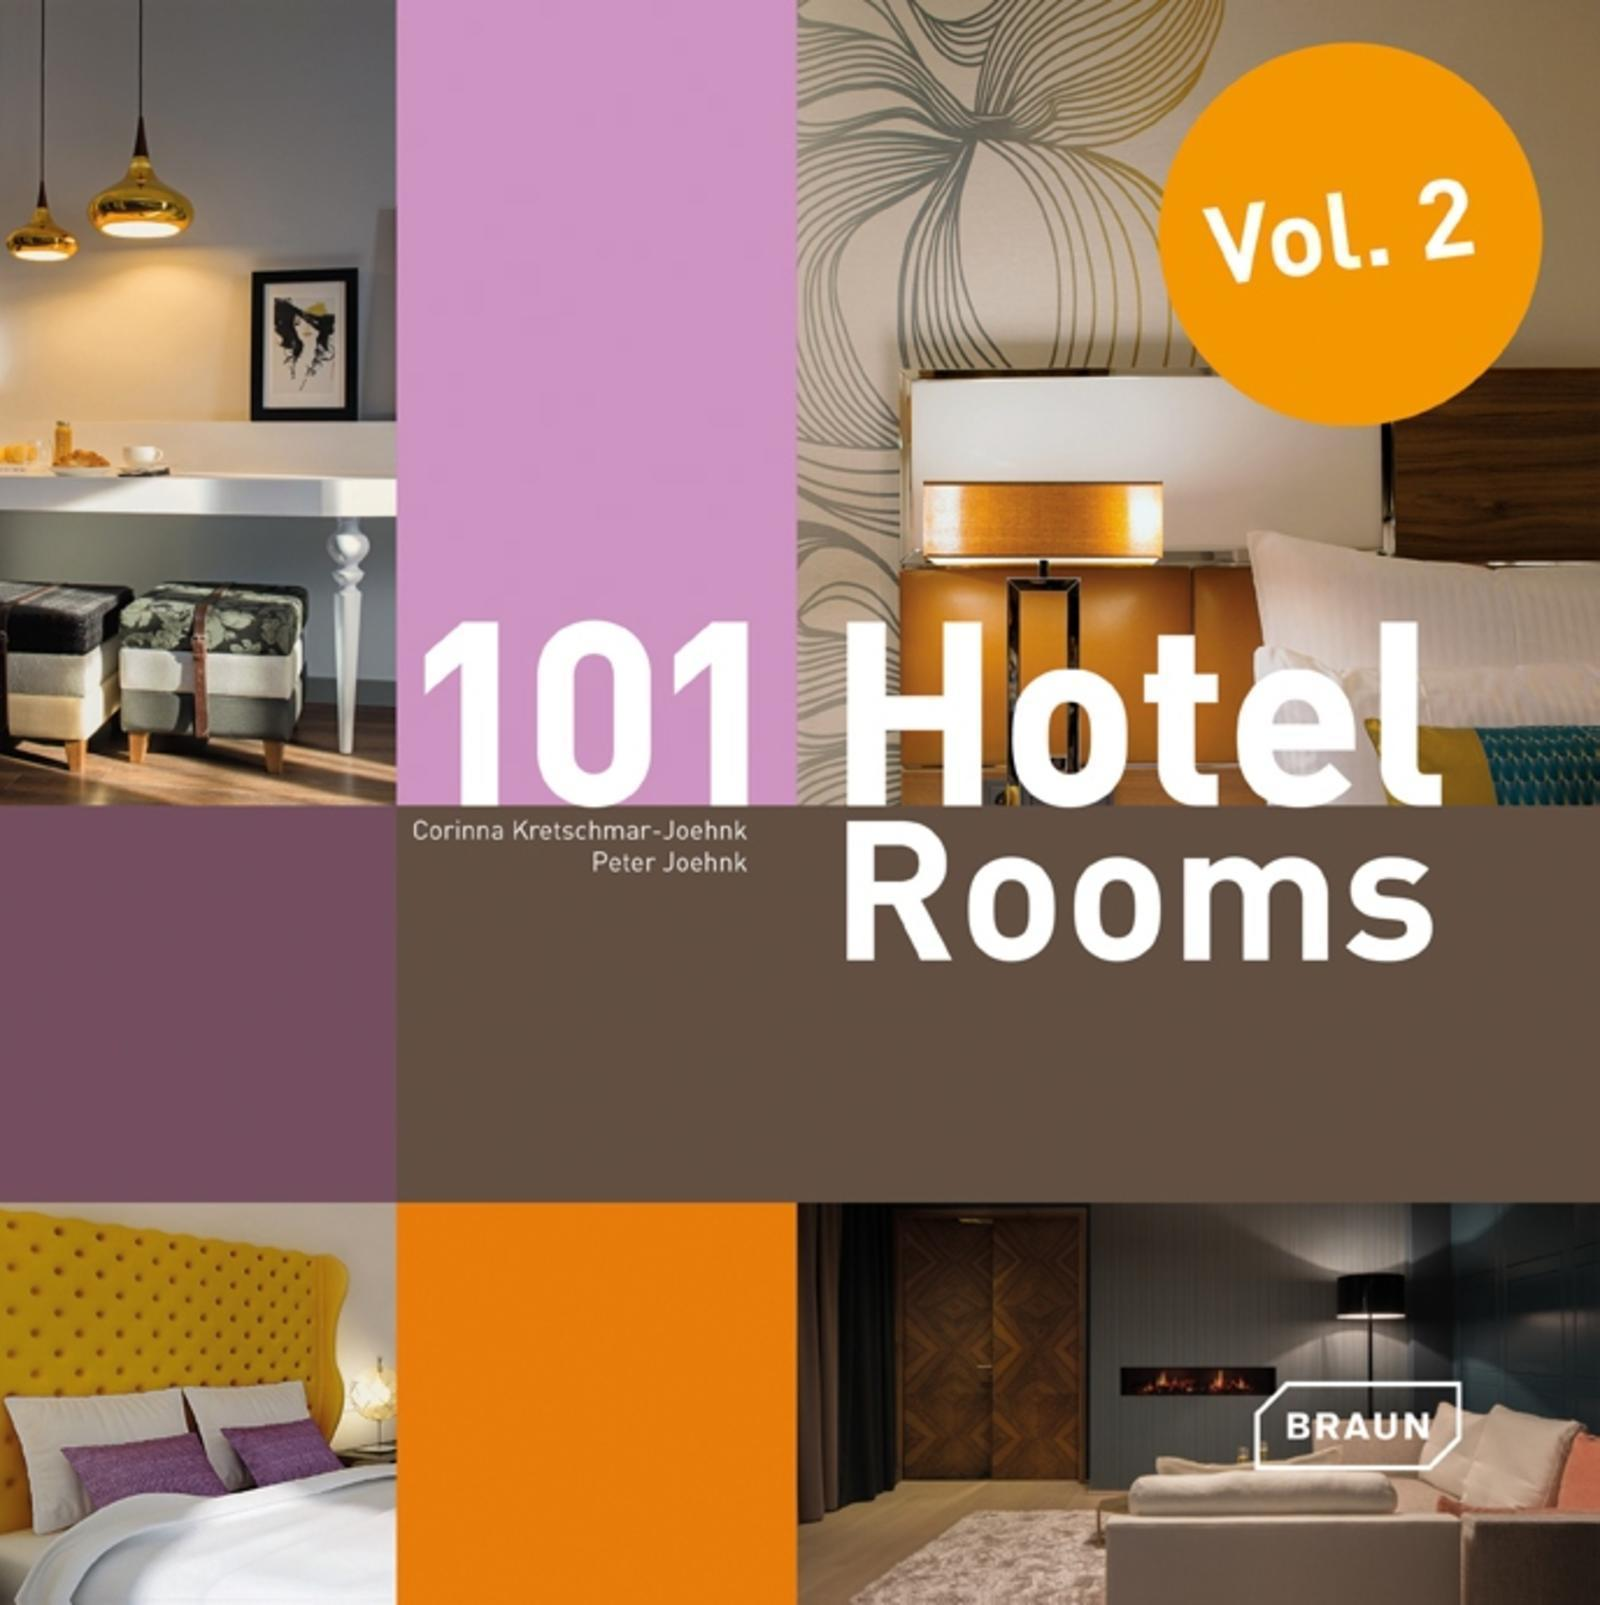 101 HOTEL ROOMS - VOLUME 2